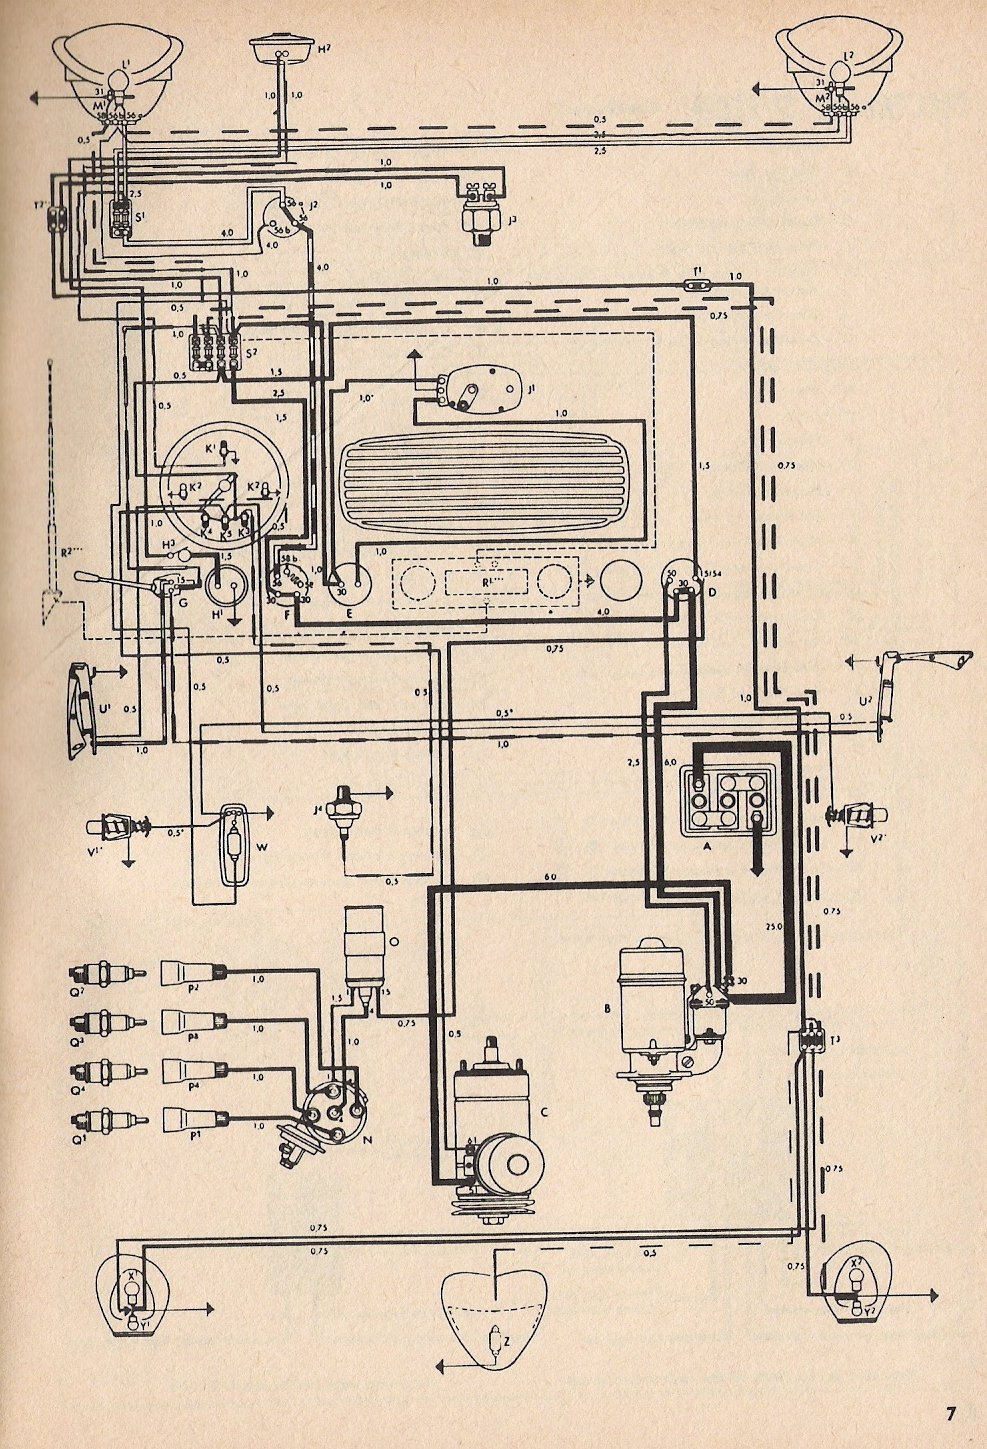 wiring diagram for 1971 super beetle wiring diagramthesamba com type 1 wiring diagramswiring diagram for 1971 super beetle 14